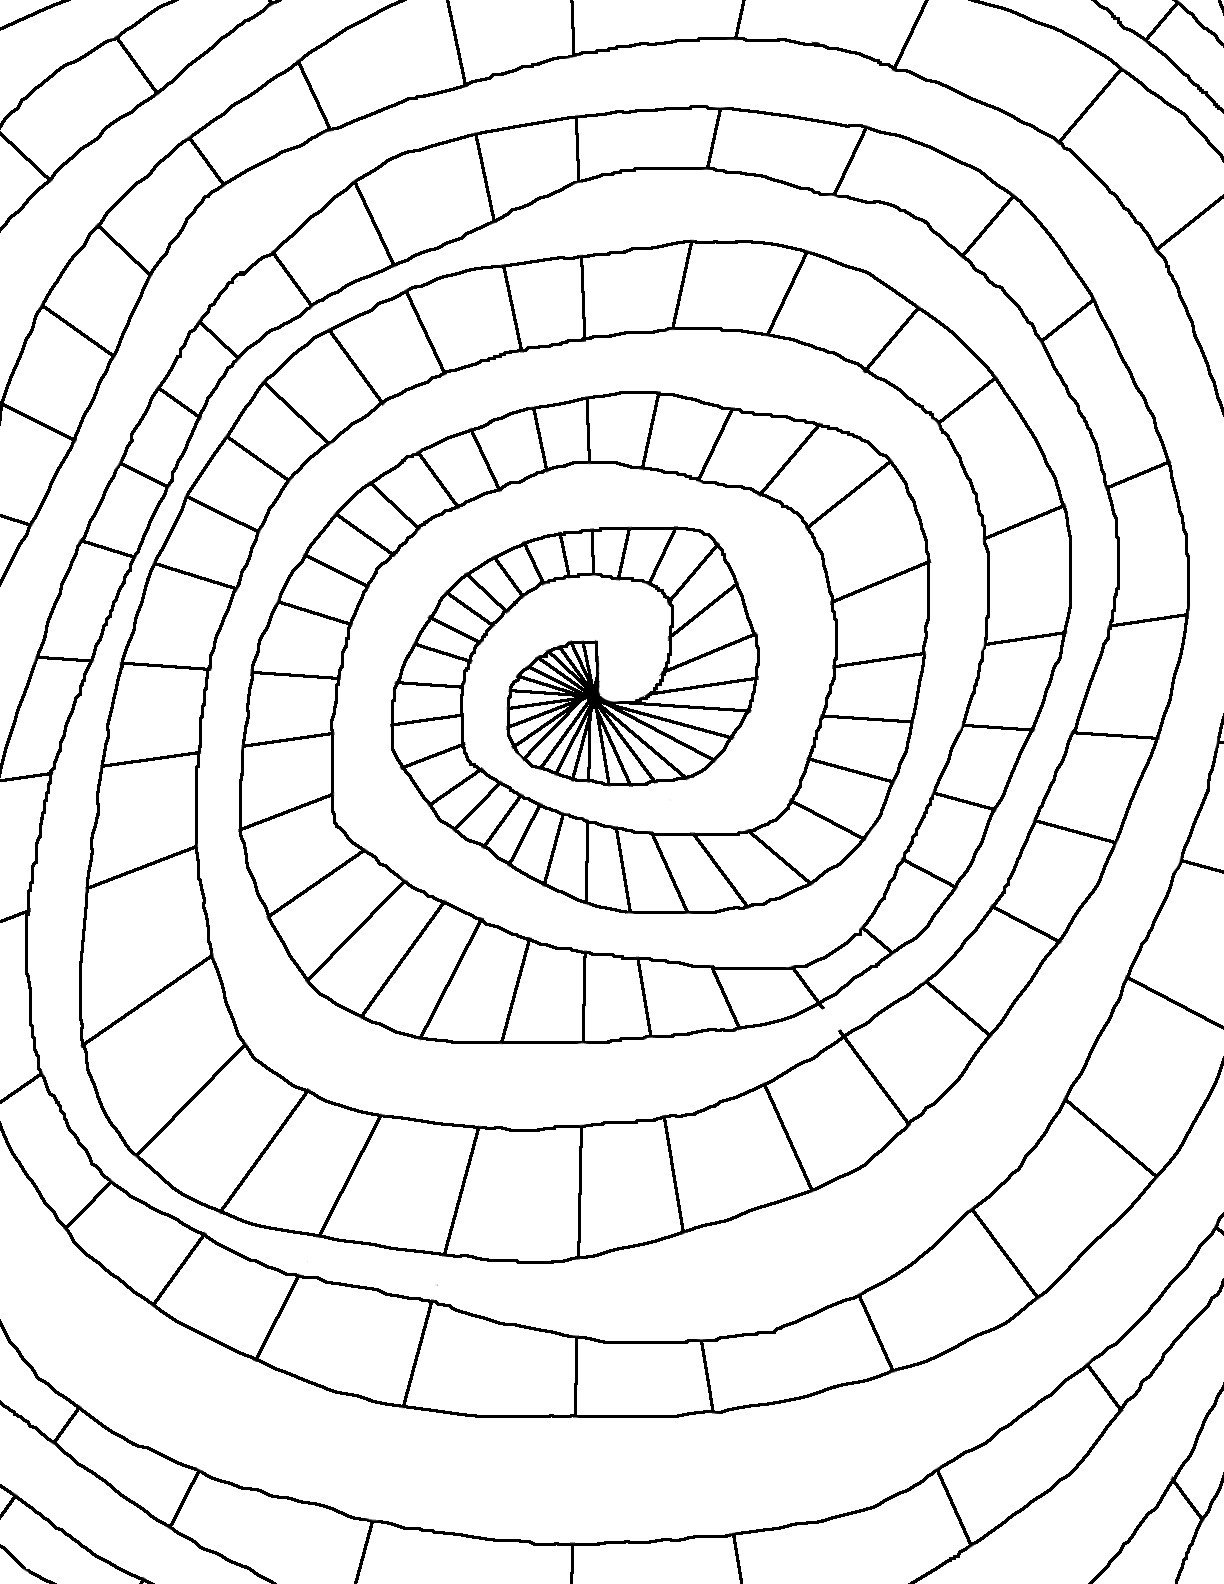 spiral coloring pages to print | Coloring Page World: Color Spiral